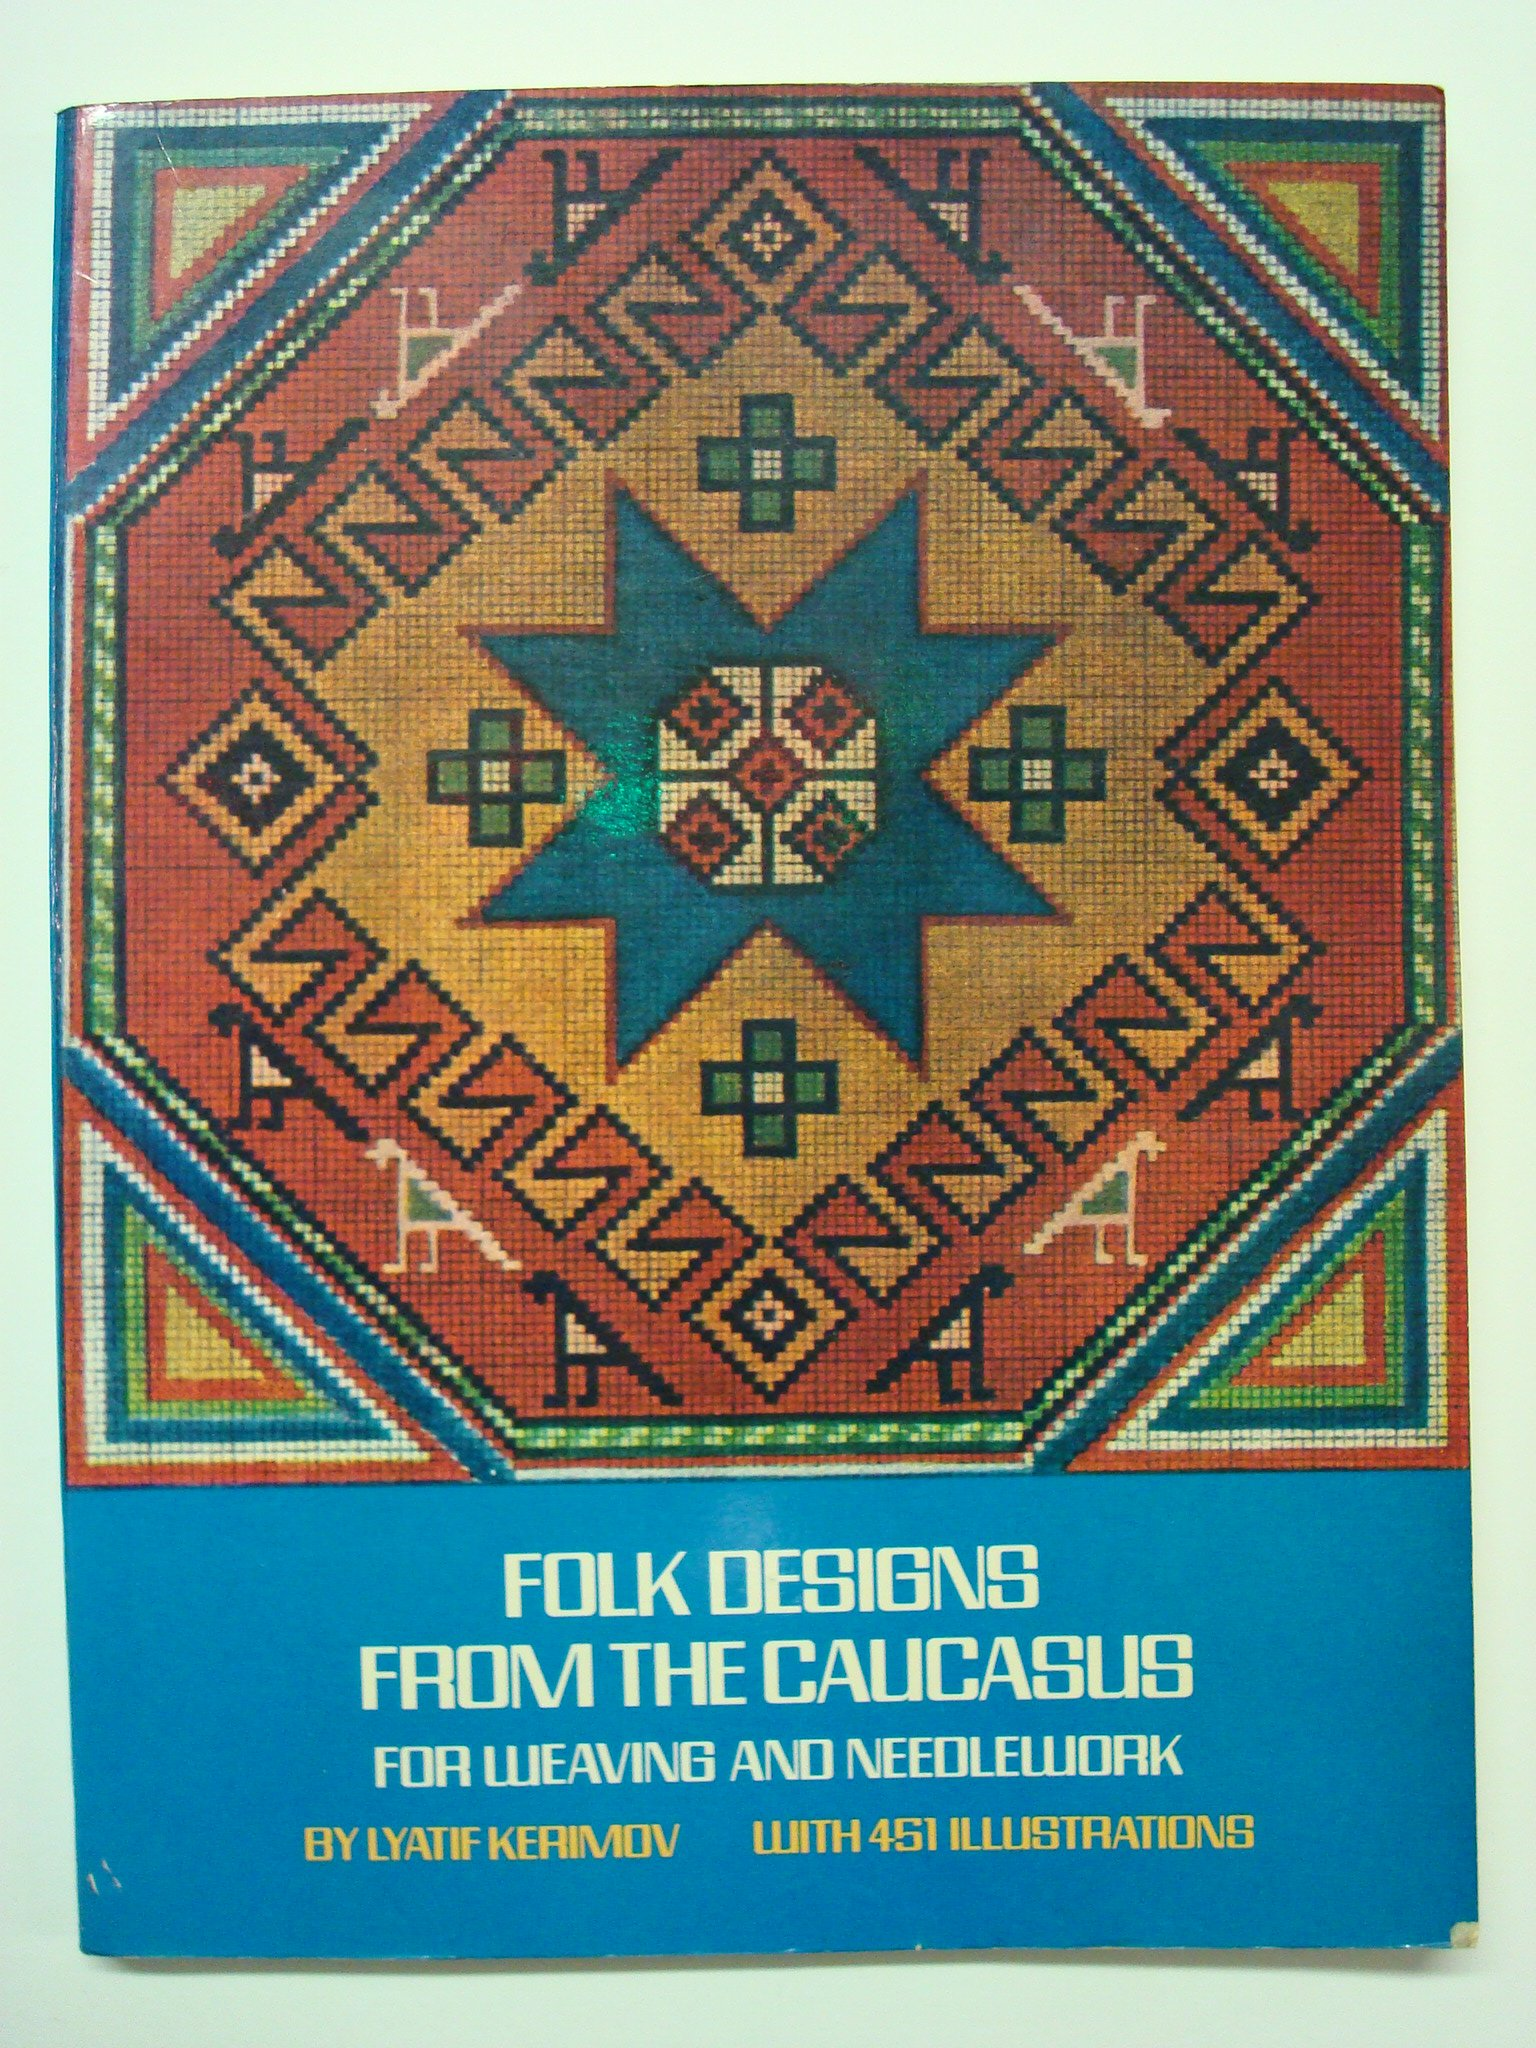 Folk Designs From The Caucasus For Weaving And Needlework